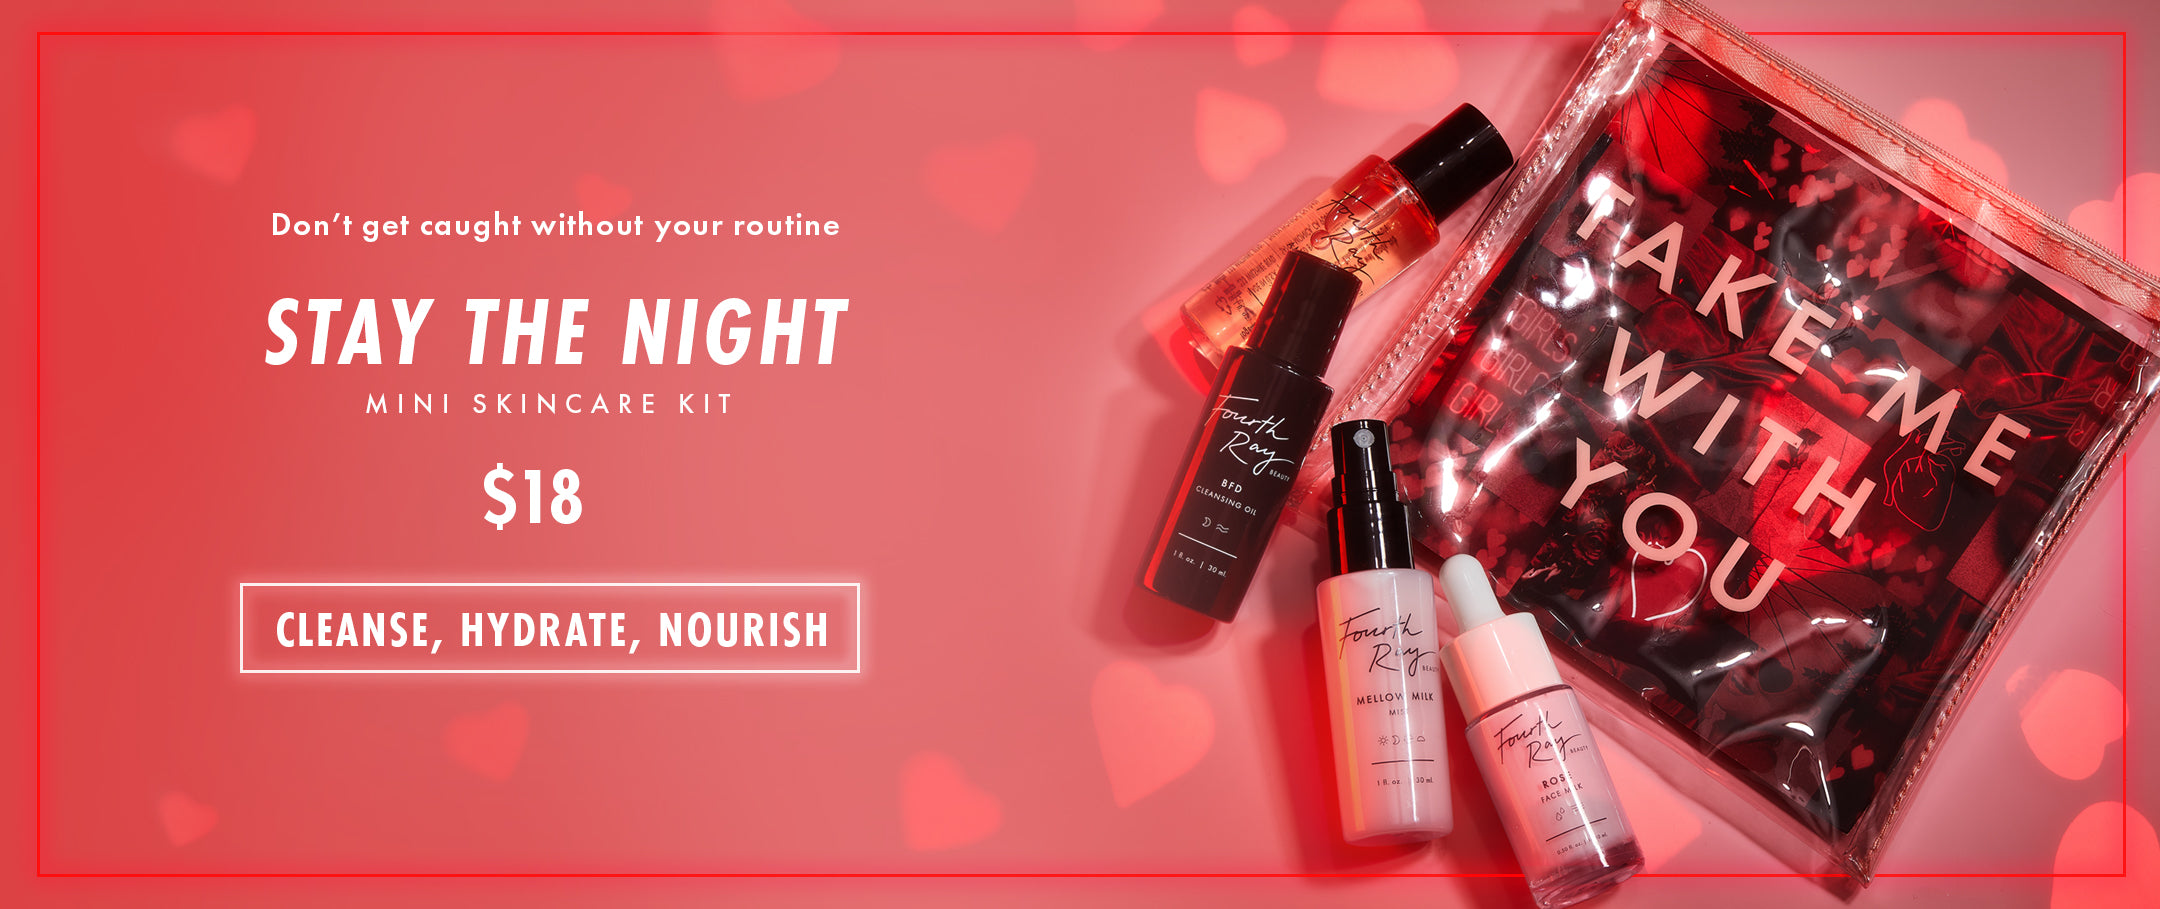 stay the night kit